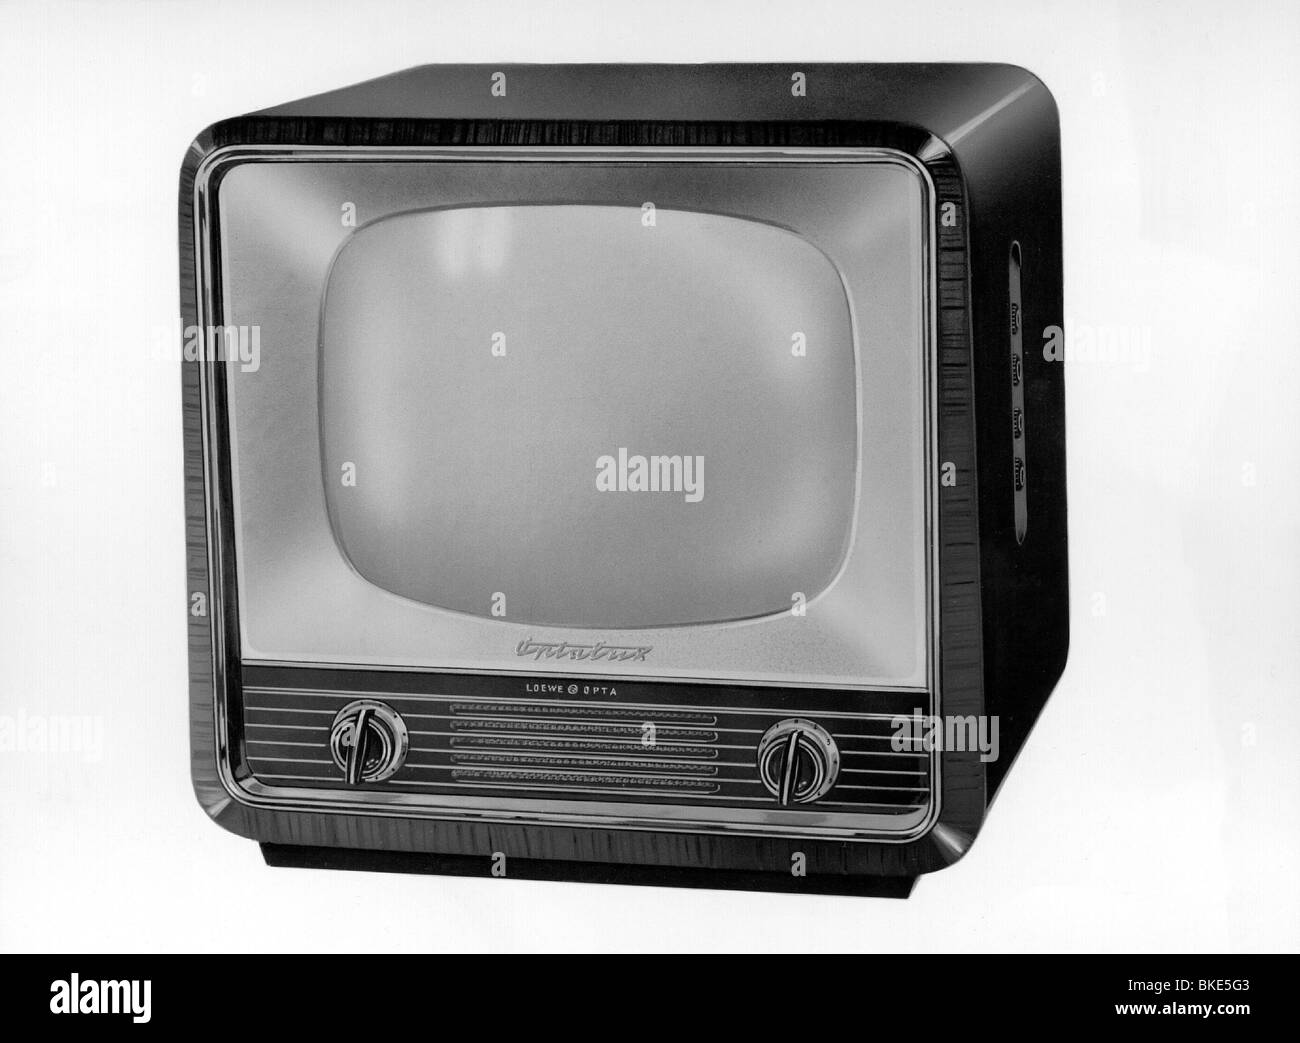 television set loewe opta stockfotos television set loewe opta bilder alamy. Black Bedroom Furniture Sets. Home Design Ideas